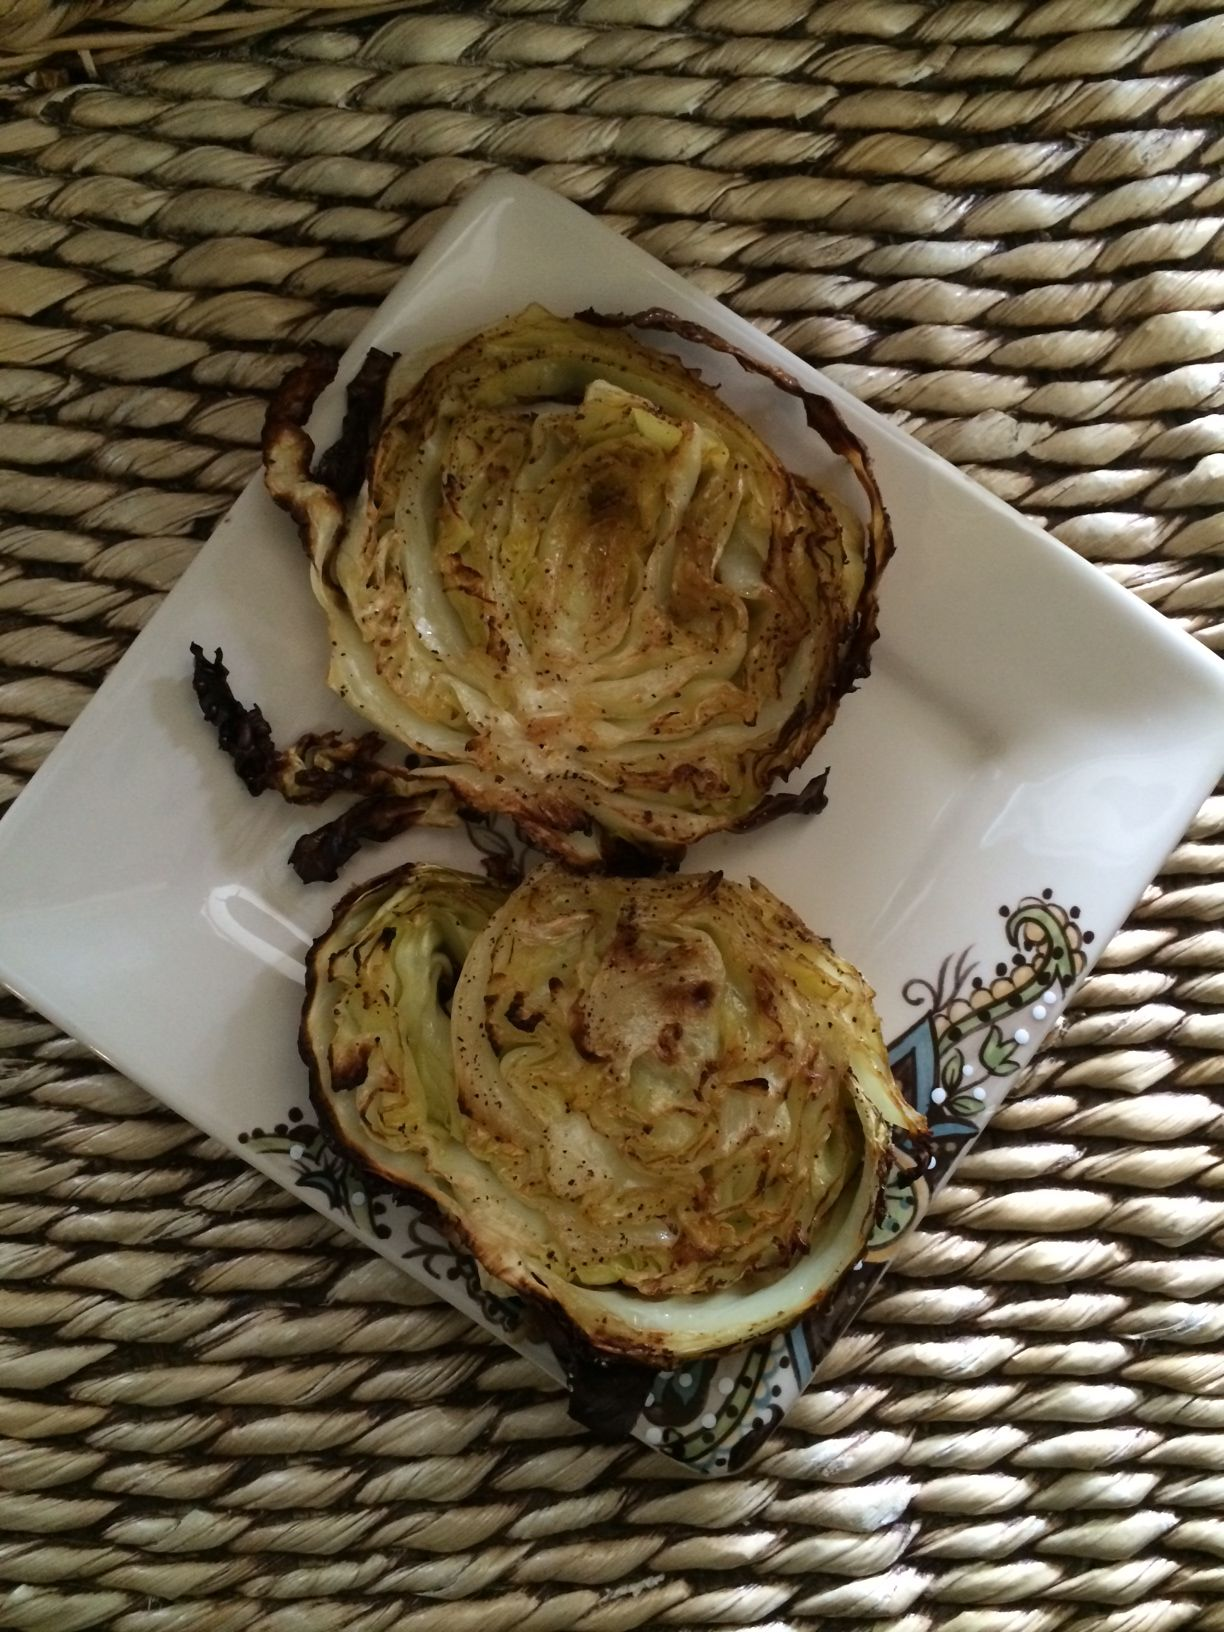 Baked Cabbage Recipe Here: http://www.glowingwellness.com/1/post/2014/01/delicious-baked-cabbage-melt-in-your-mouth-good.html #healthy #cleaneating #vegetarian